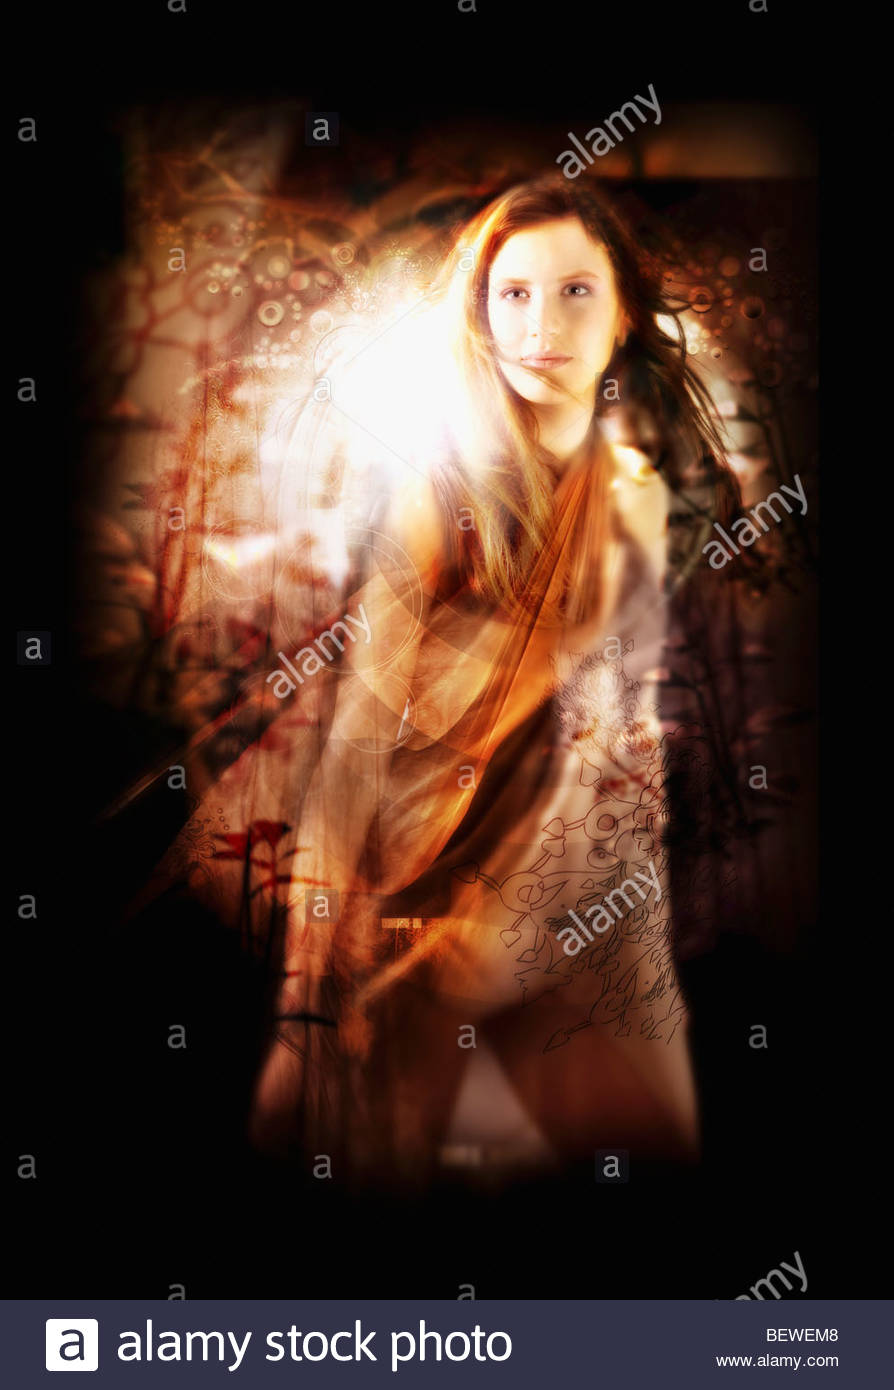 Woman standing with abstract pattern in foreground Stock Photo